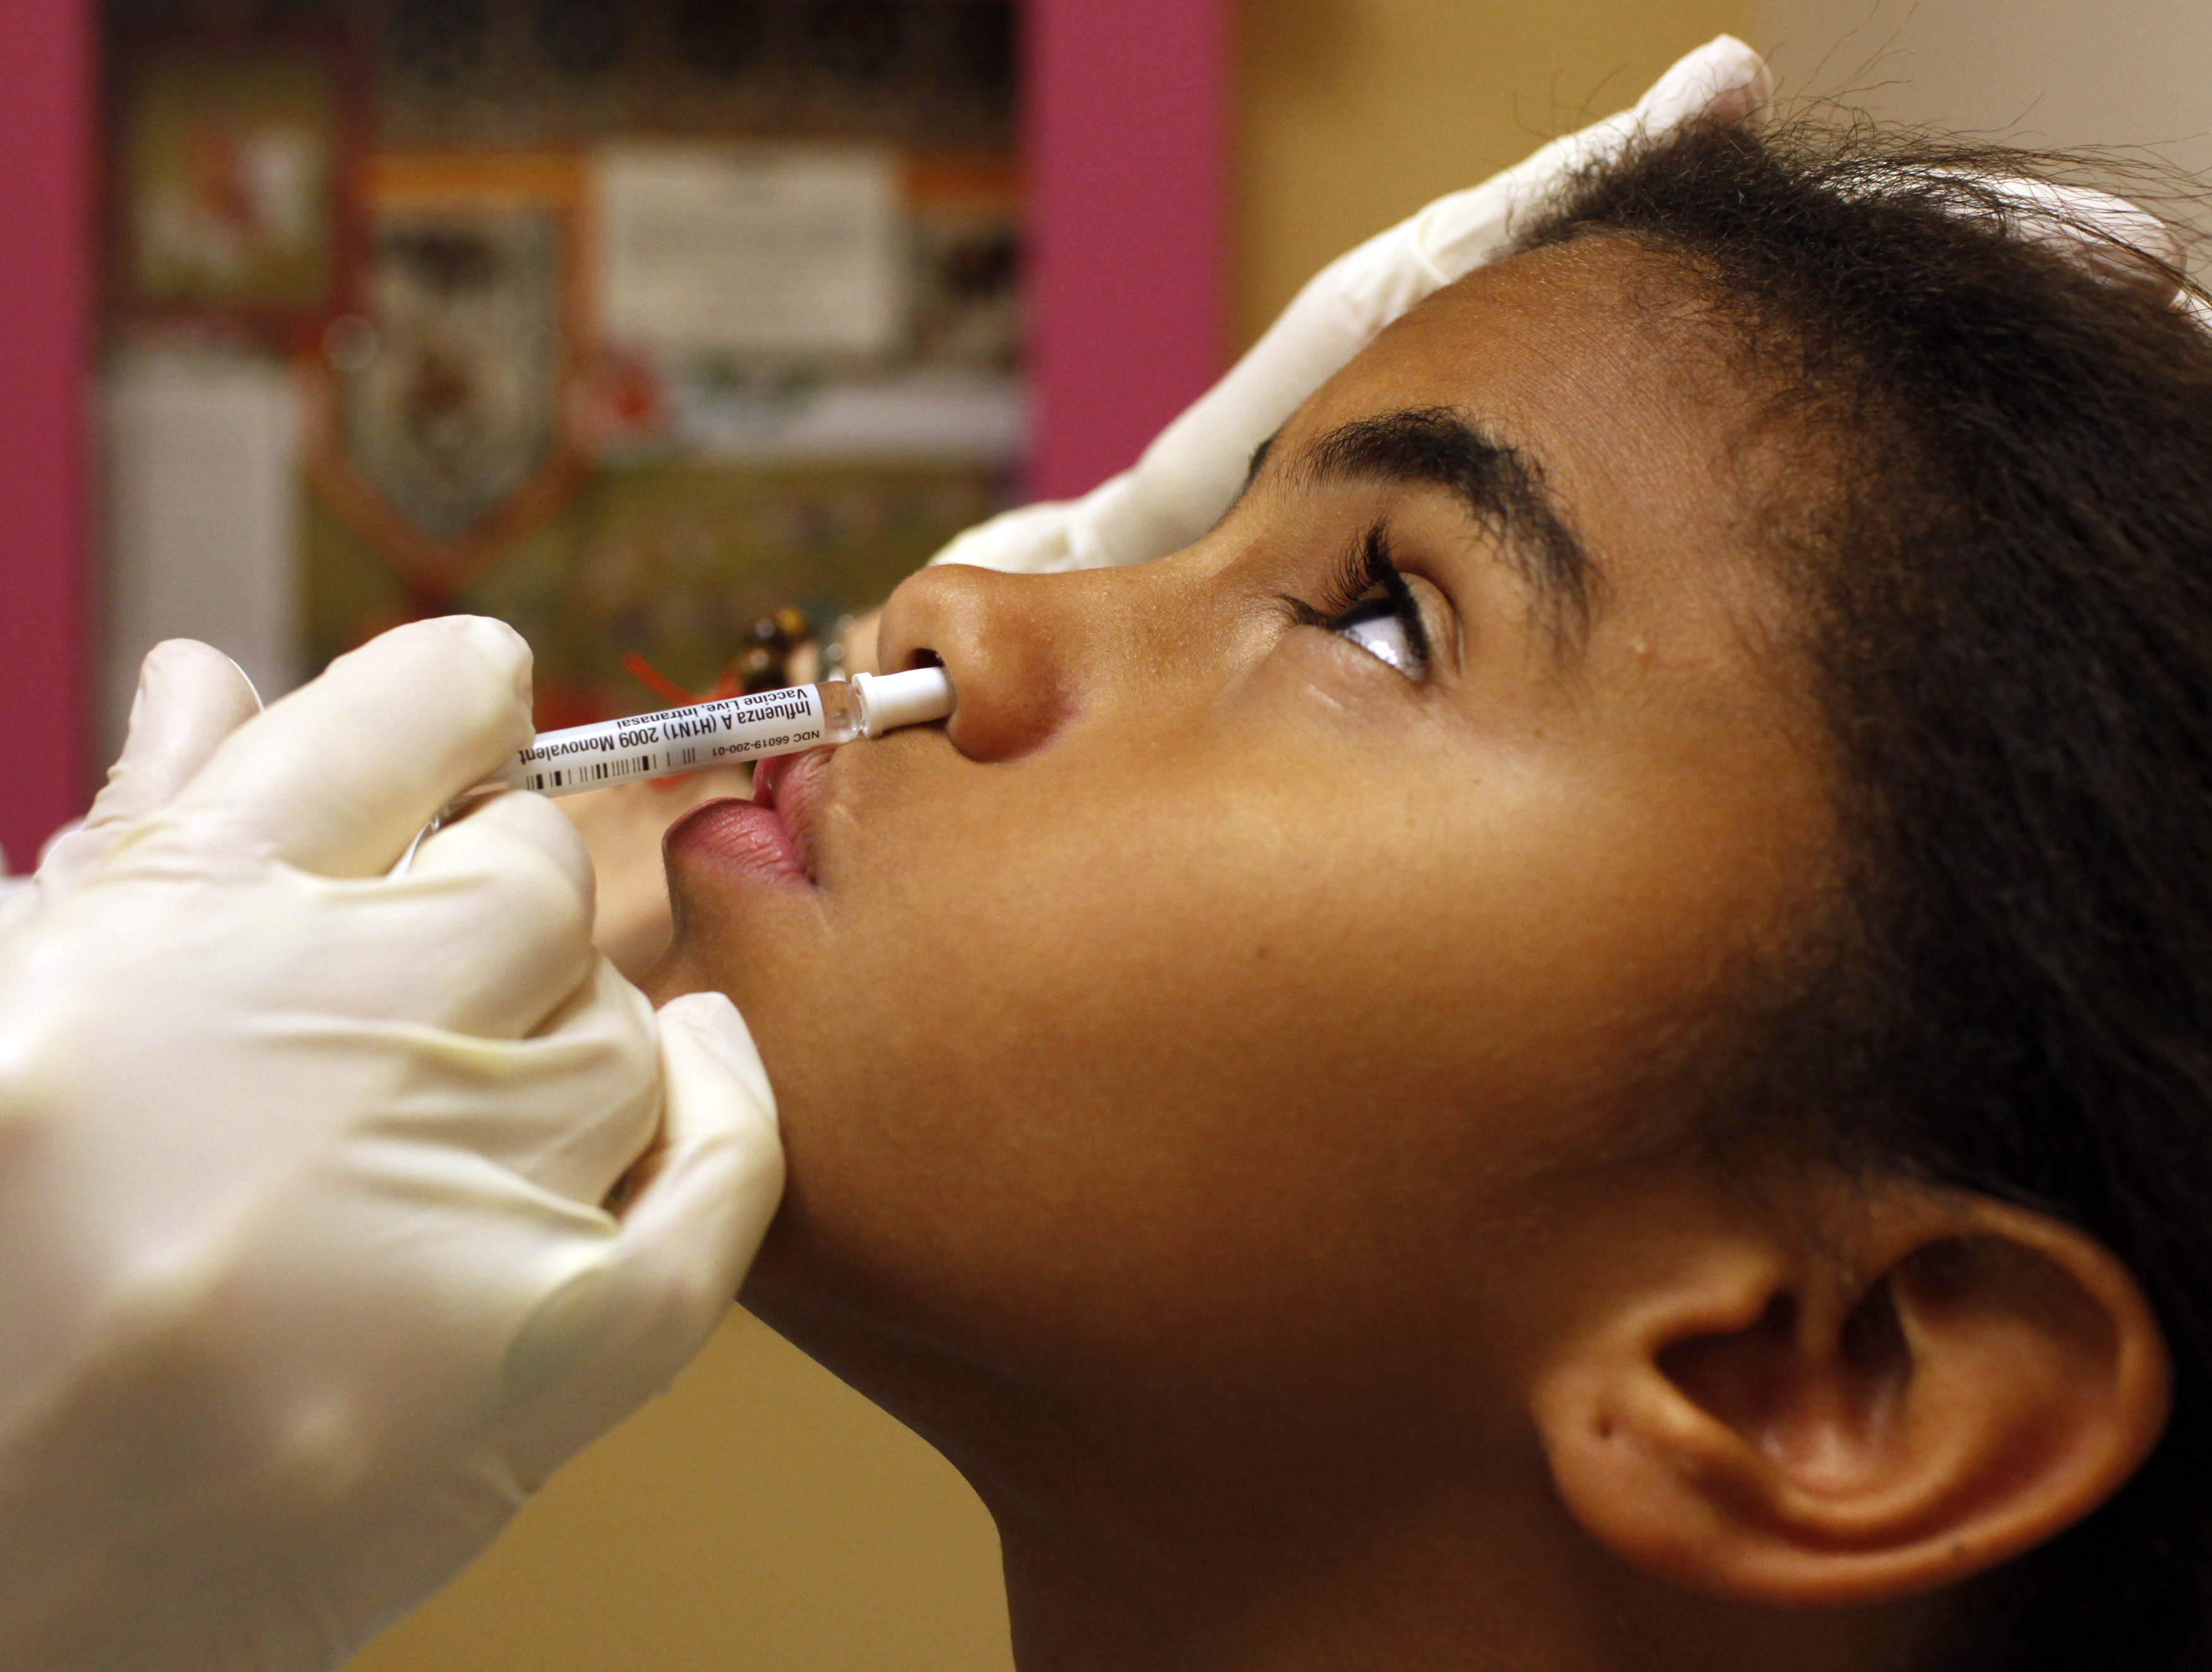 Eleven year-old Kerimal Suriel receives an H1N1 swine flu vaccine at the Children's Hospital Boston primary care clinic in Boston, Massachusetts October 7, 2009.   REUTERS/Brian Snyder    (UNITED STATES SCI TECH) - GM1E5A80H4C01